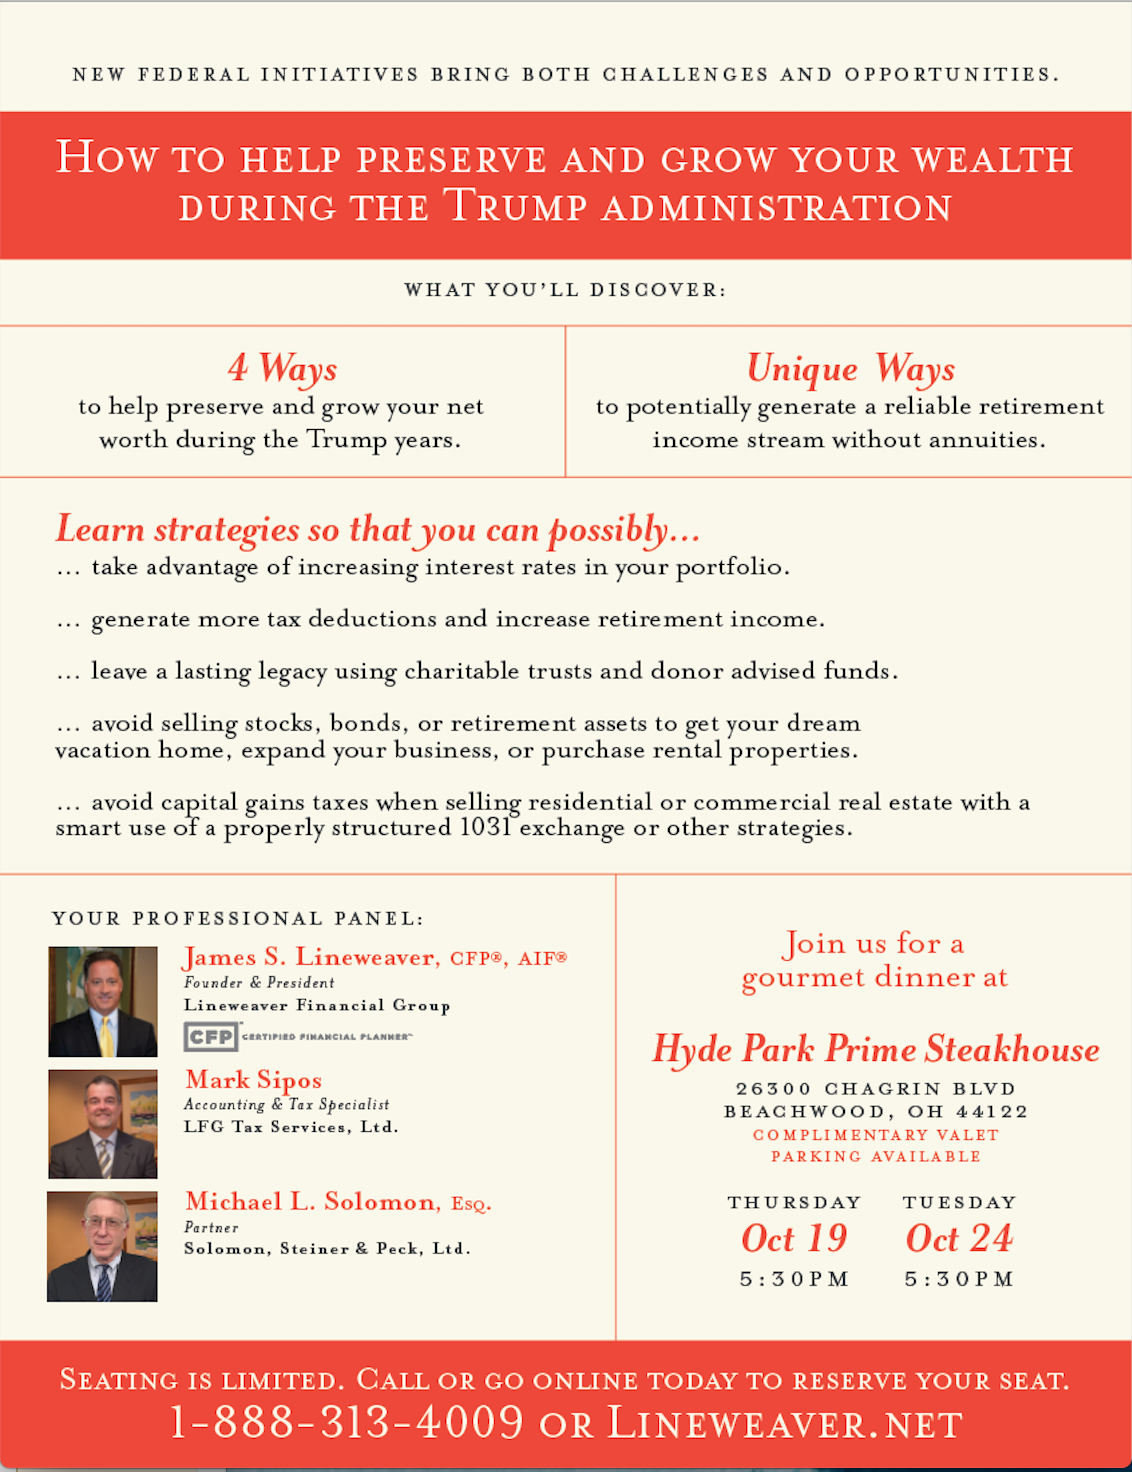 How To Preserve and Grow your Wealth During the Trump Administration | Lineweaver Financial